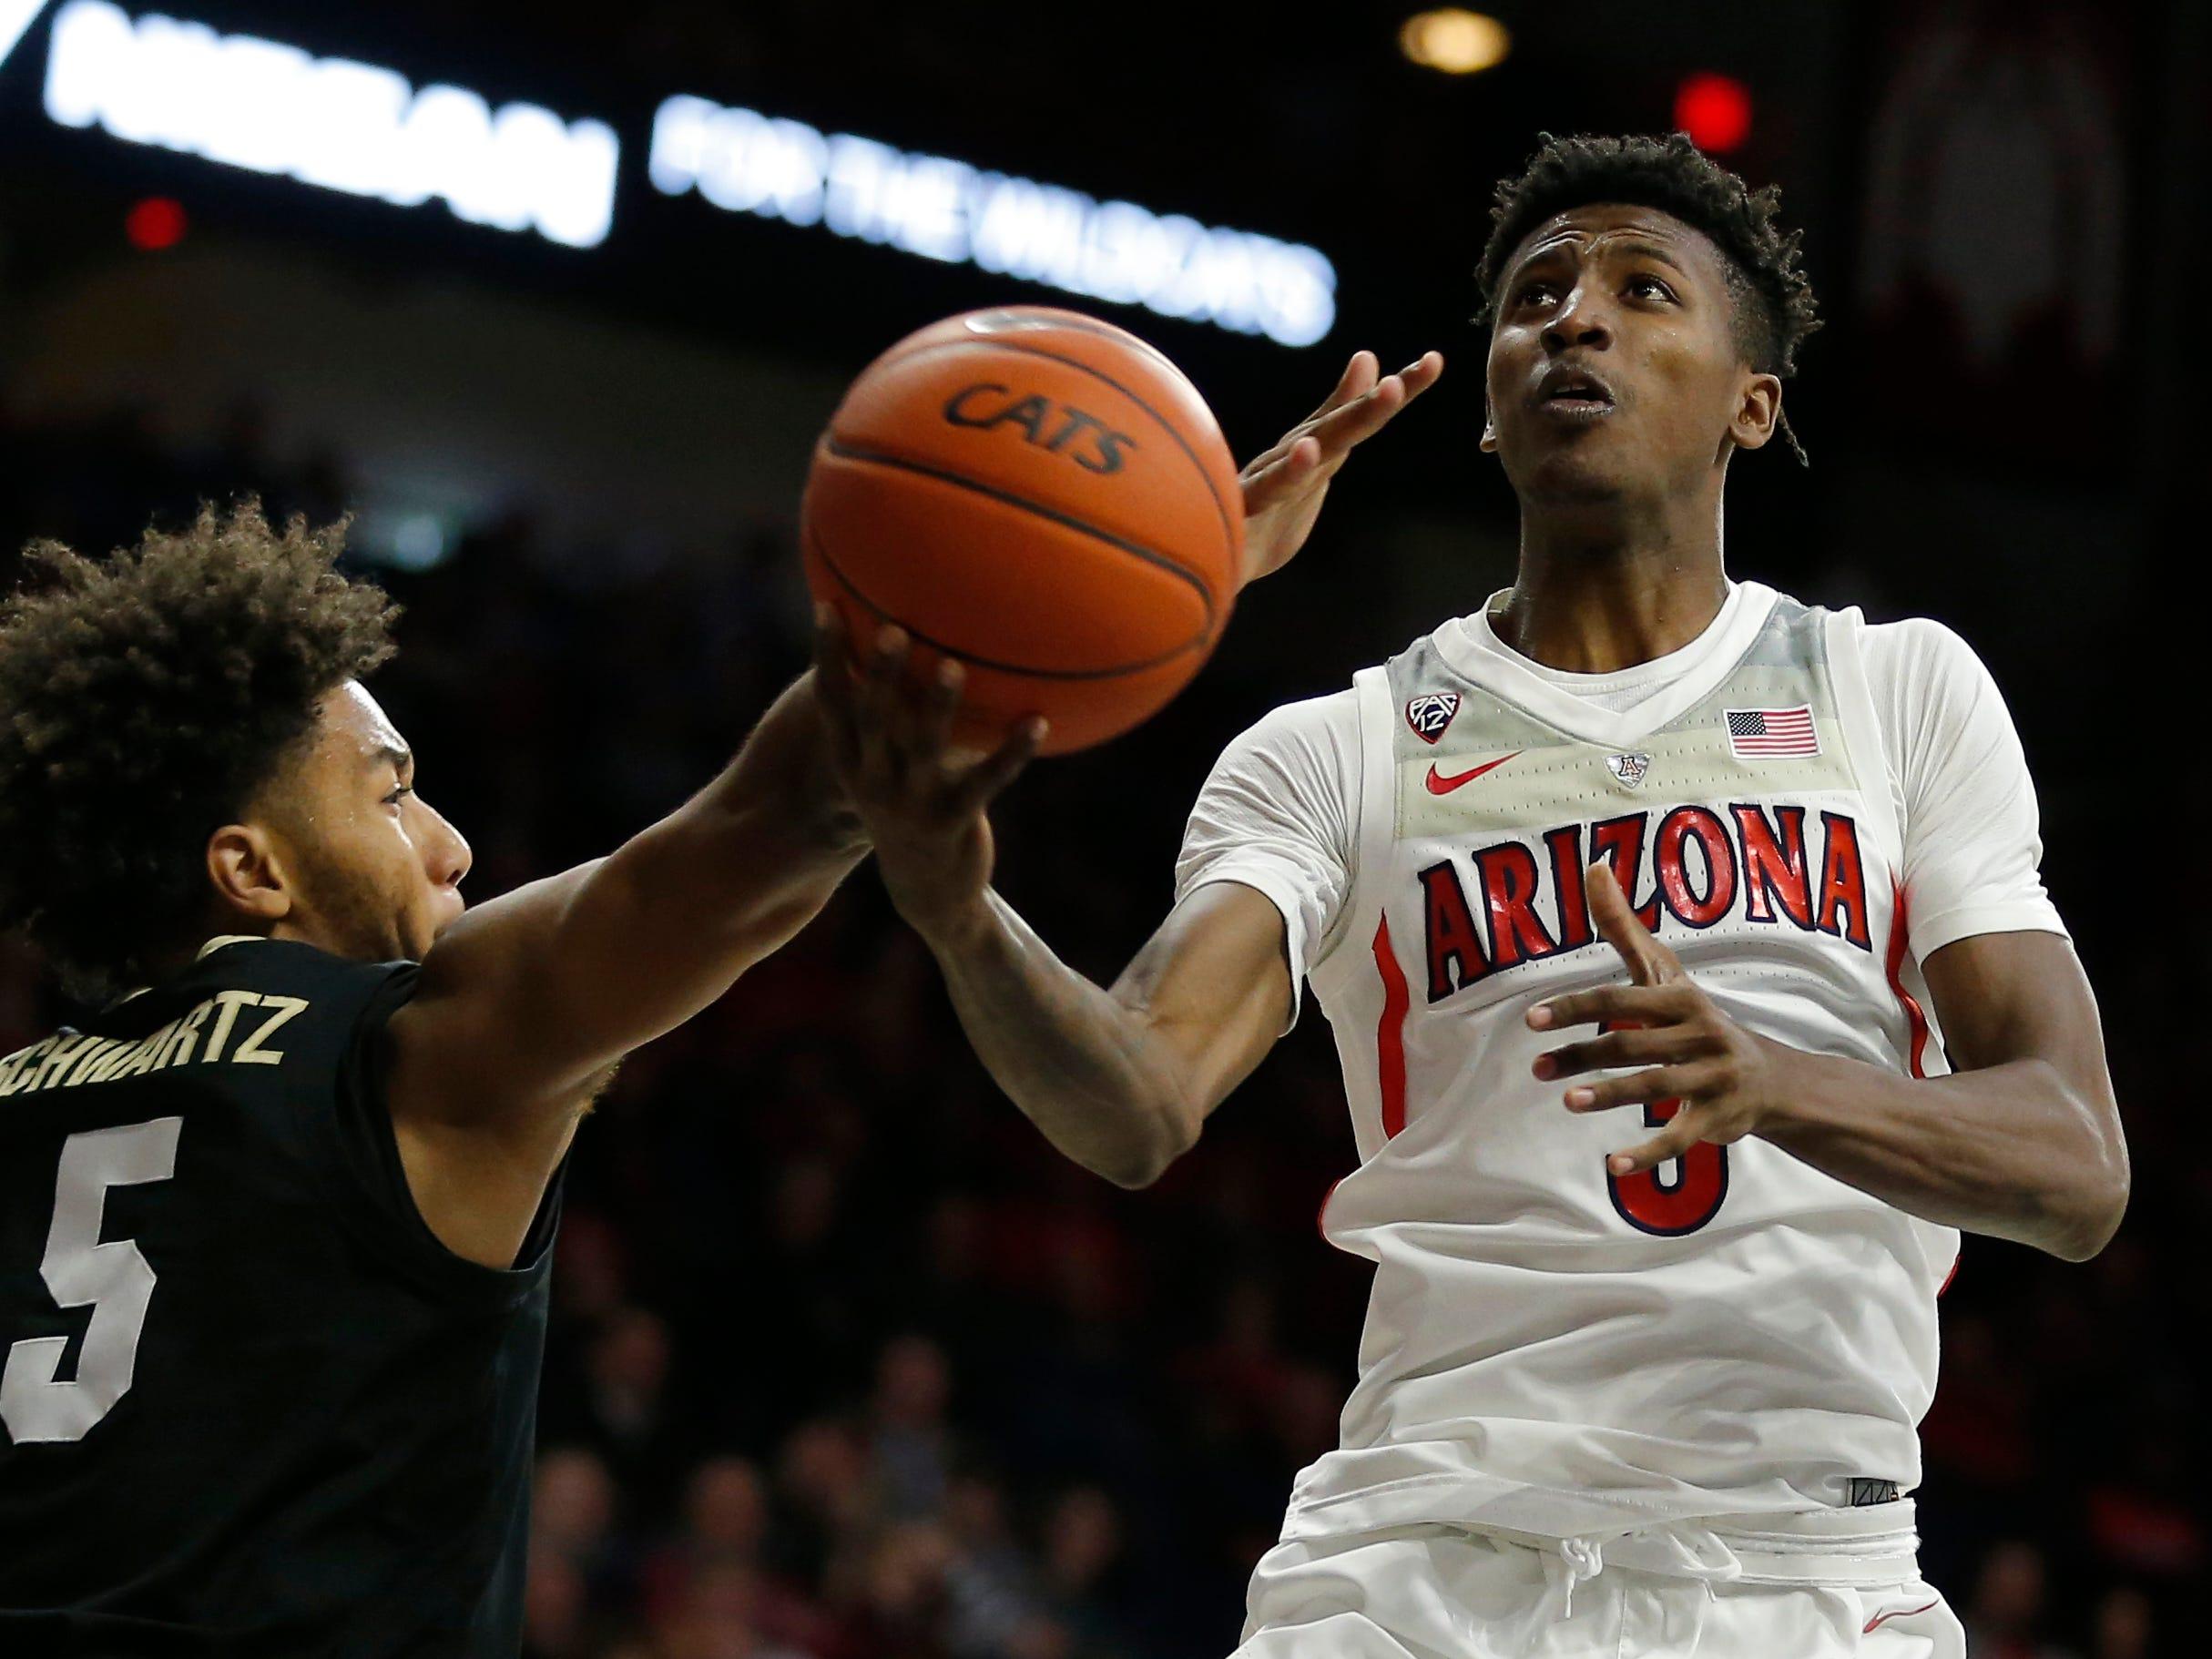 Arizona guard Dylan Smith drives past Colorado guard D'Shawn Schwartz (5) during the second half of an NCAA college basketball game Thursday, Jan. 3, 2019, in Tucson, Ariz. Arizona defeated Colorado 64-56. (AP Photo/Rick Scuteri)